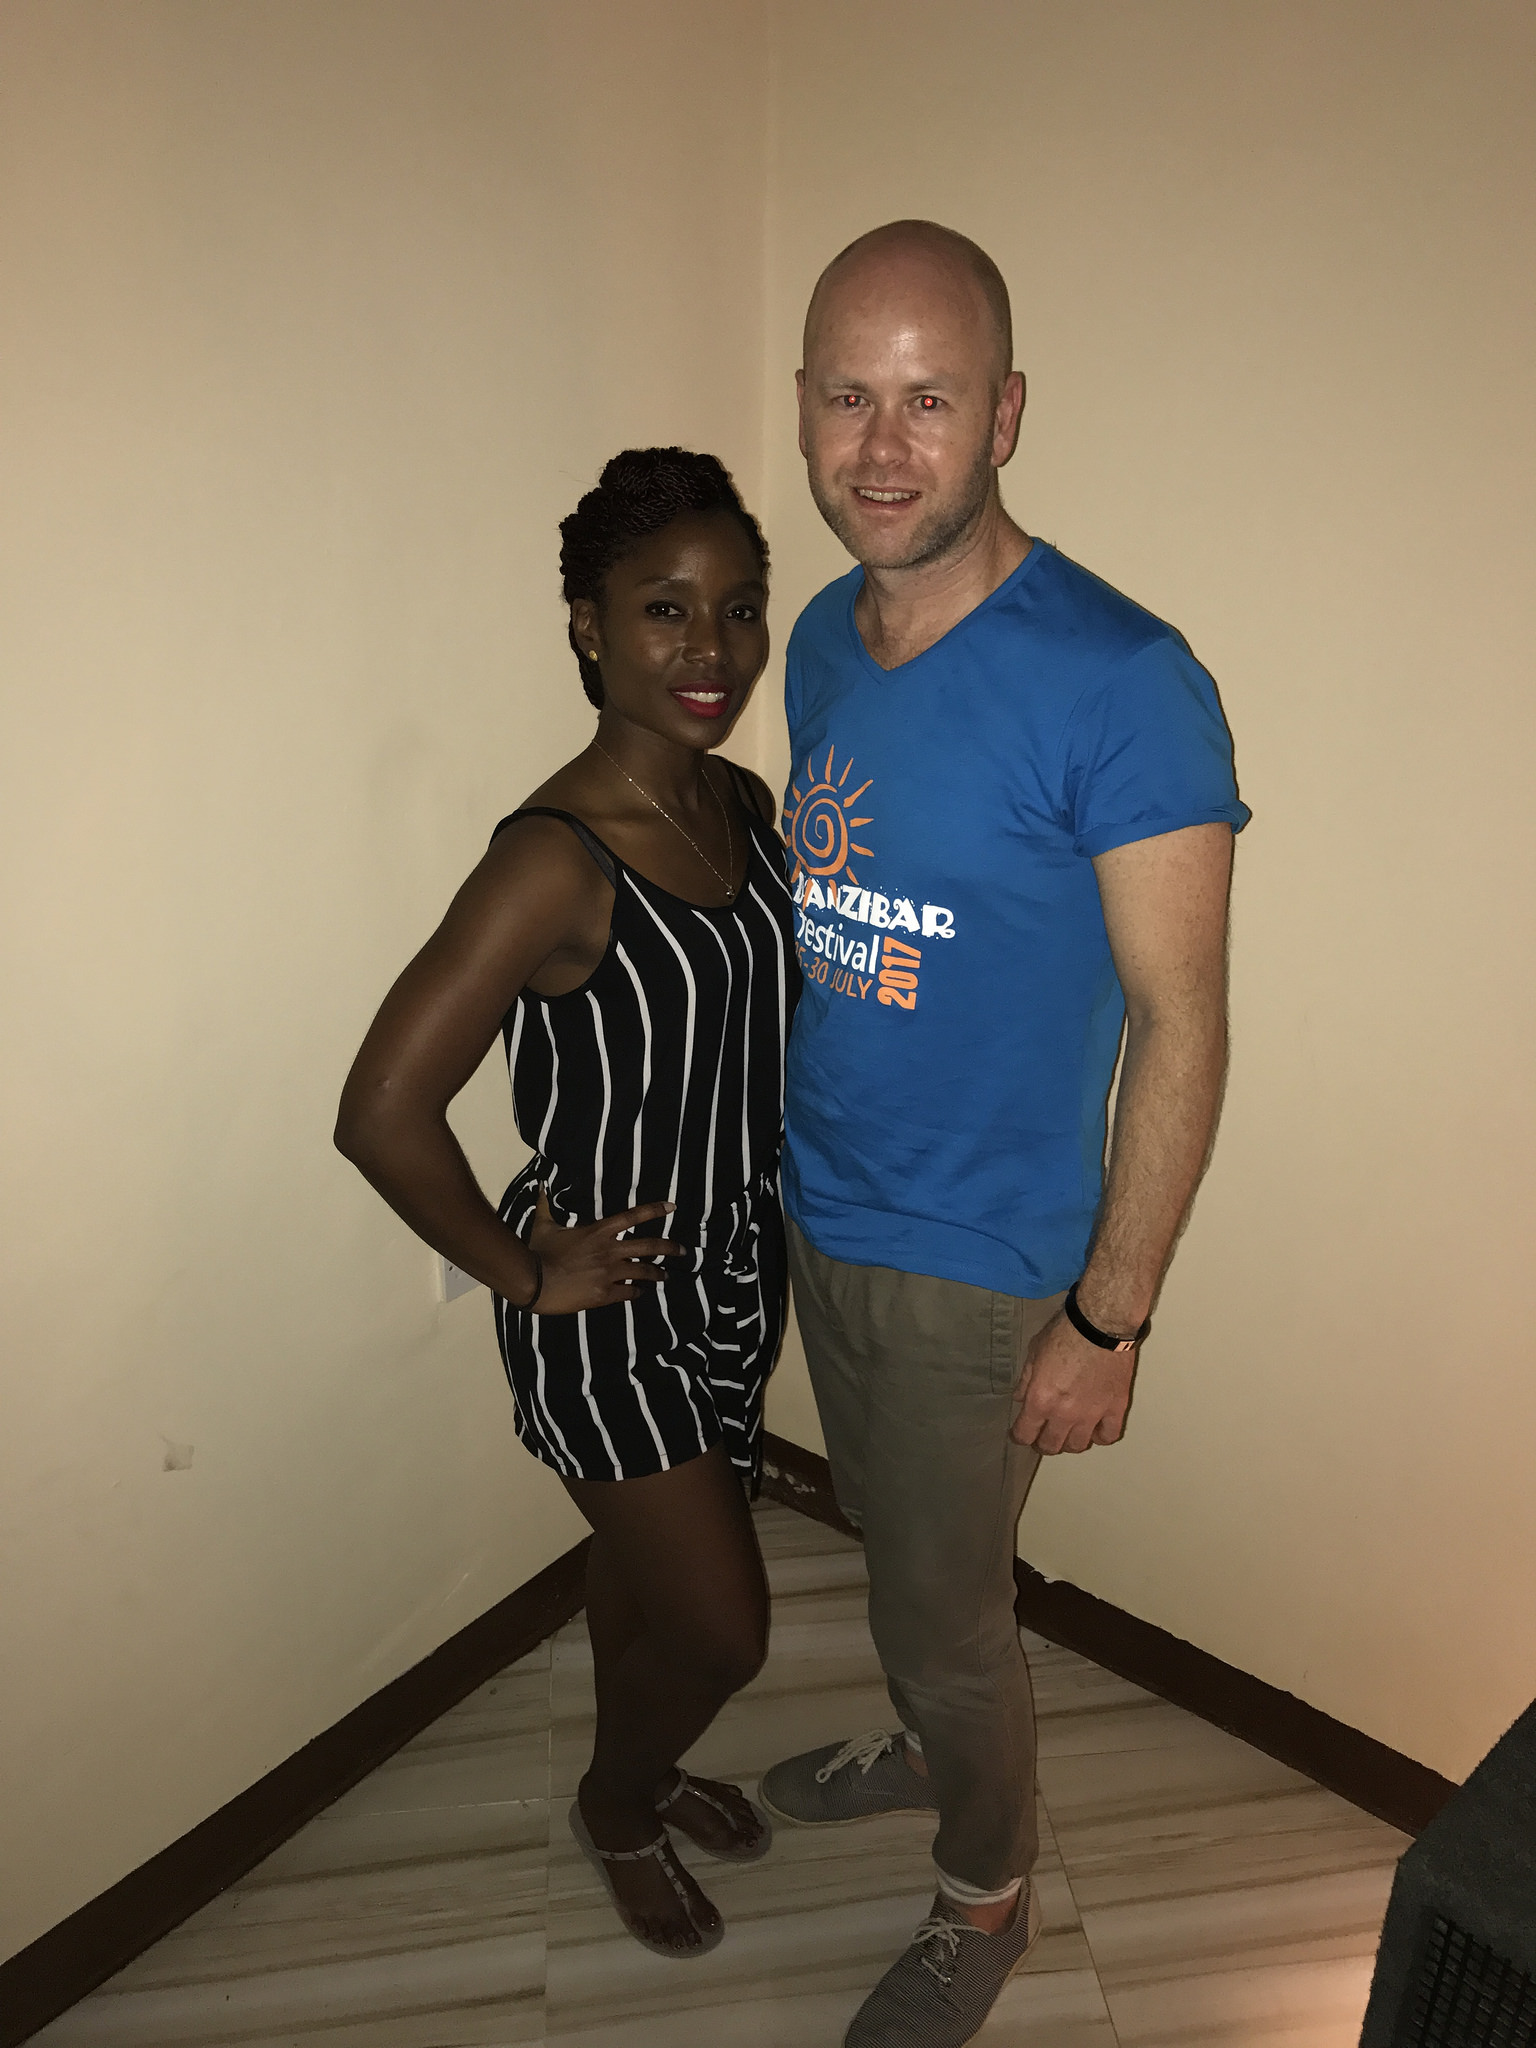 Ryan Hill & Maria Mvungi